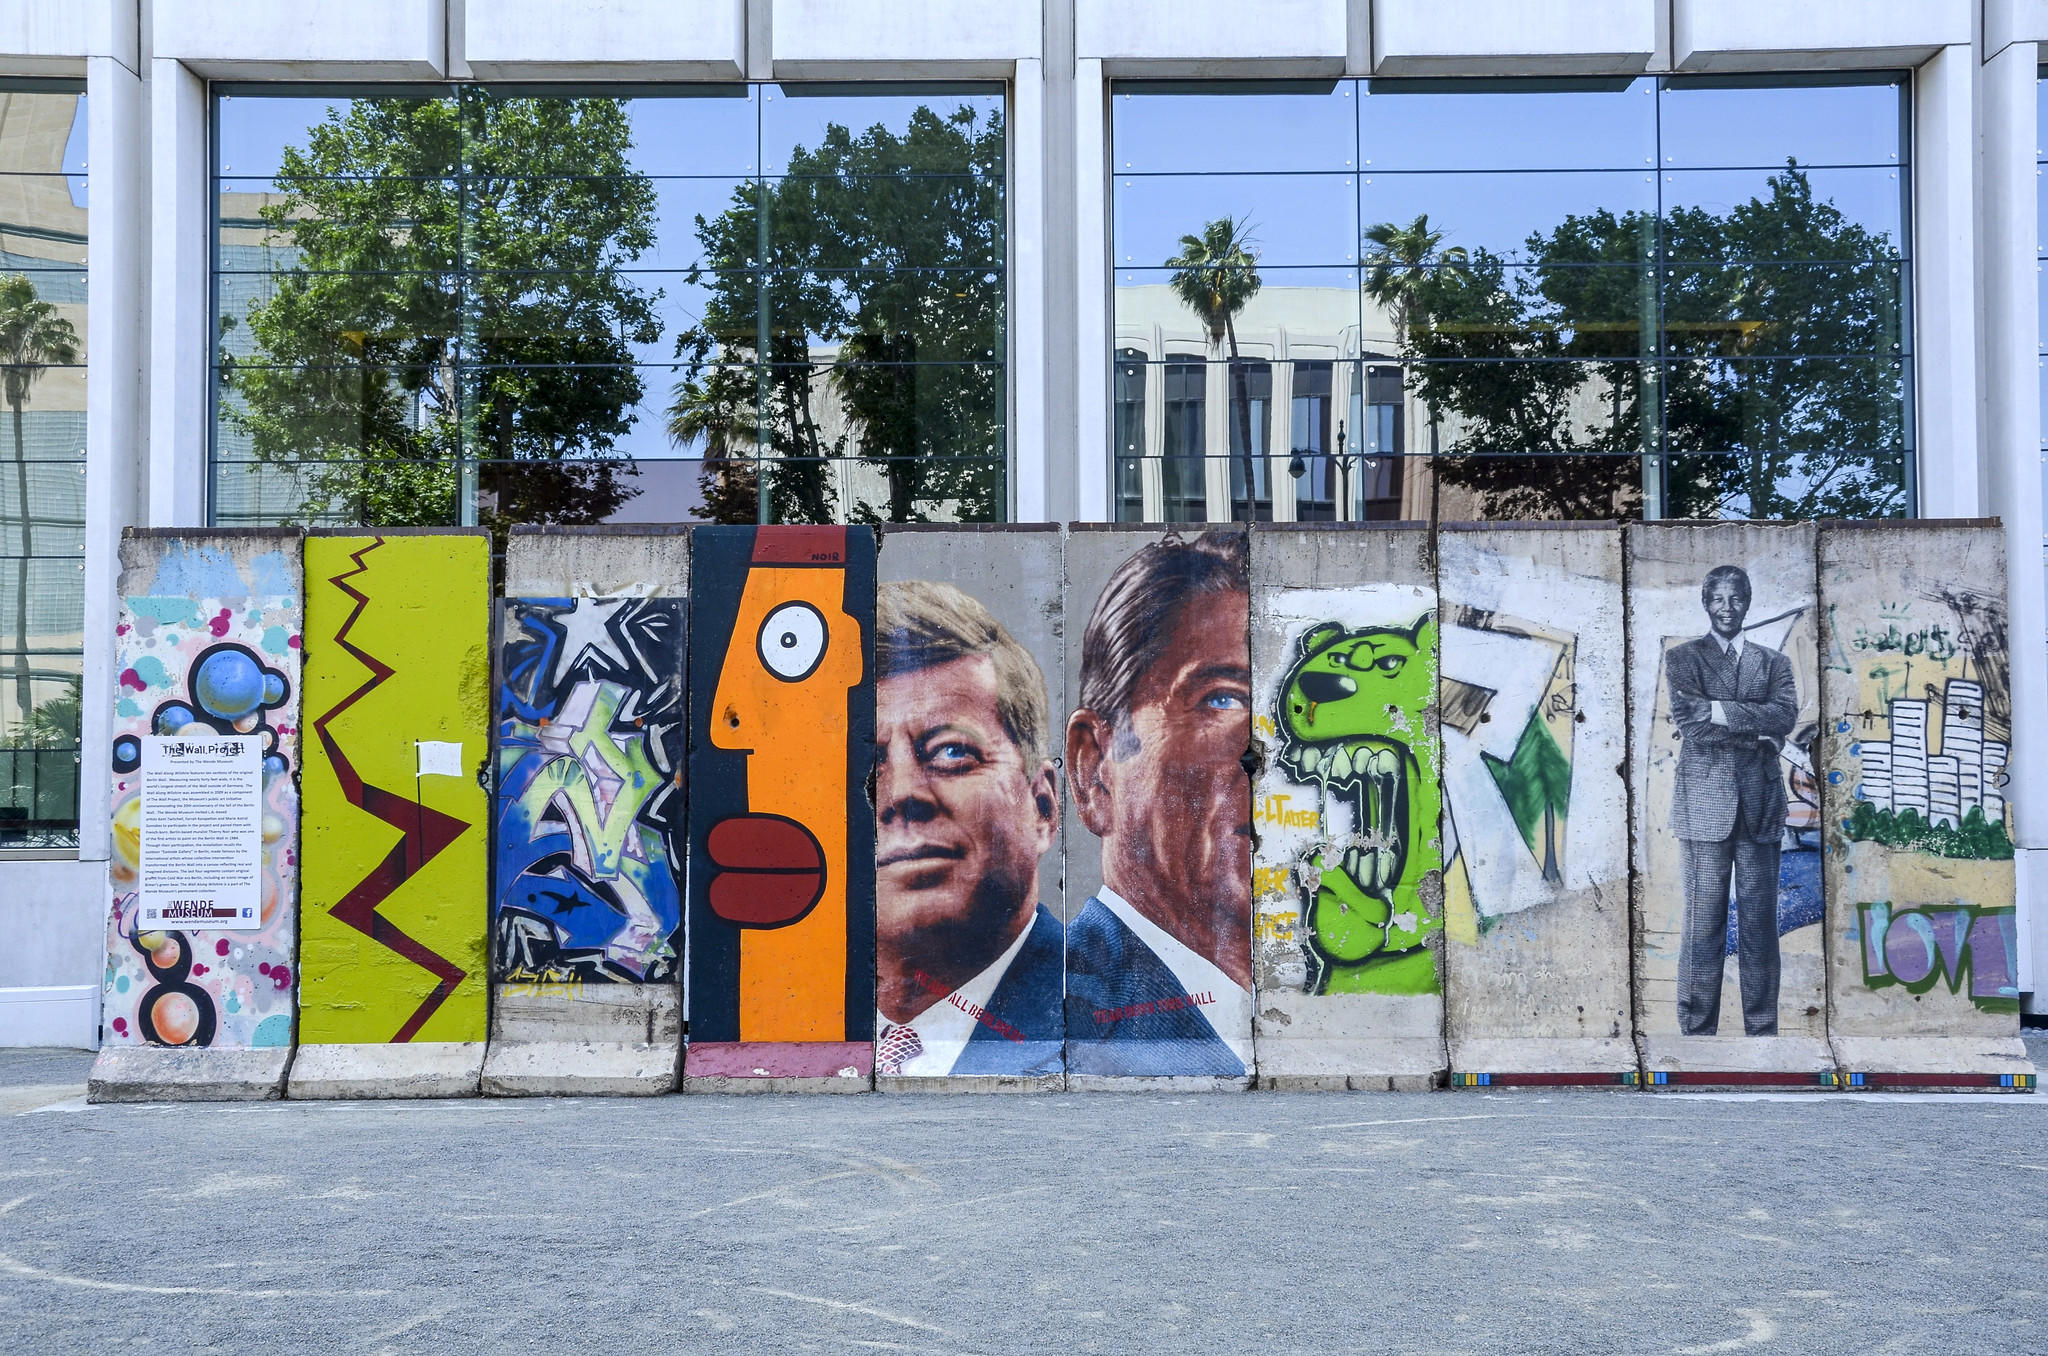 Segments of the Berlin Wall, now displayed at 5900 Wilshire Boulevard, Los Angeles. Presented by the Wende Museum.